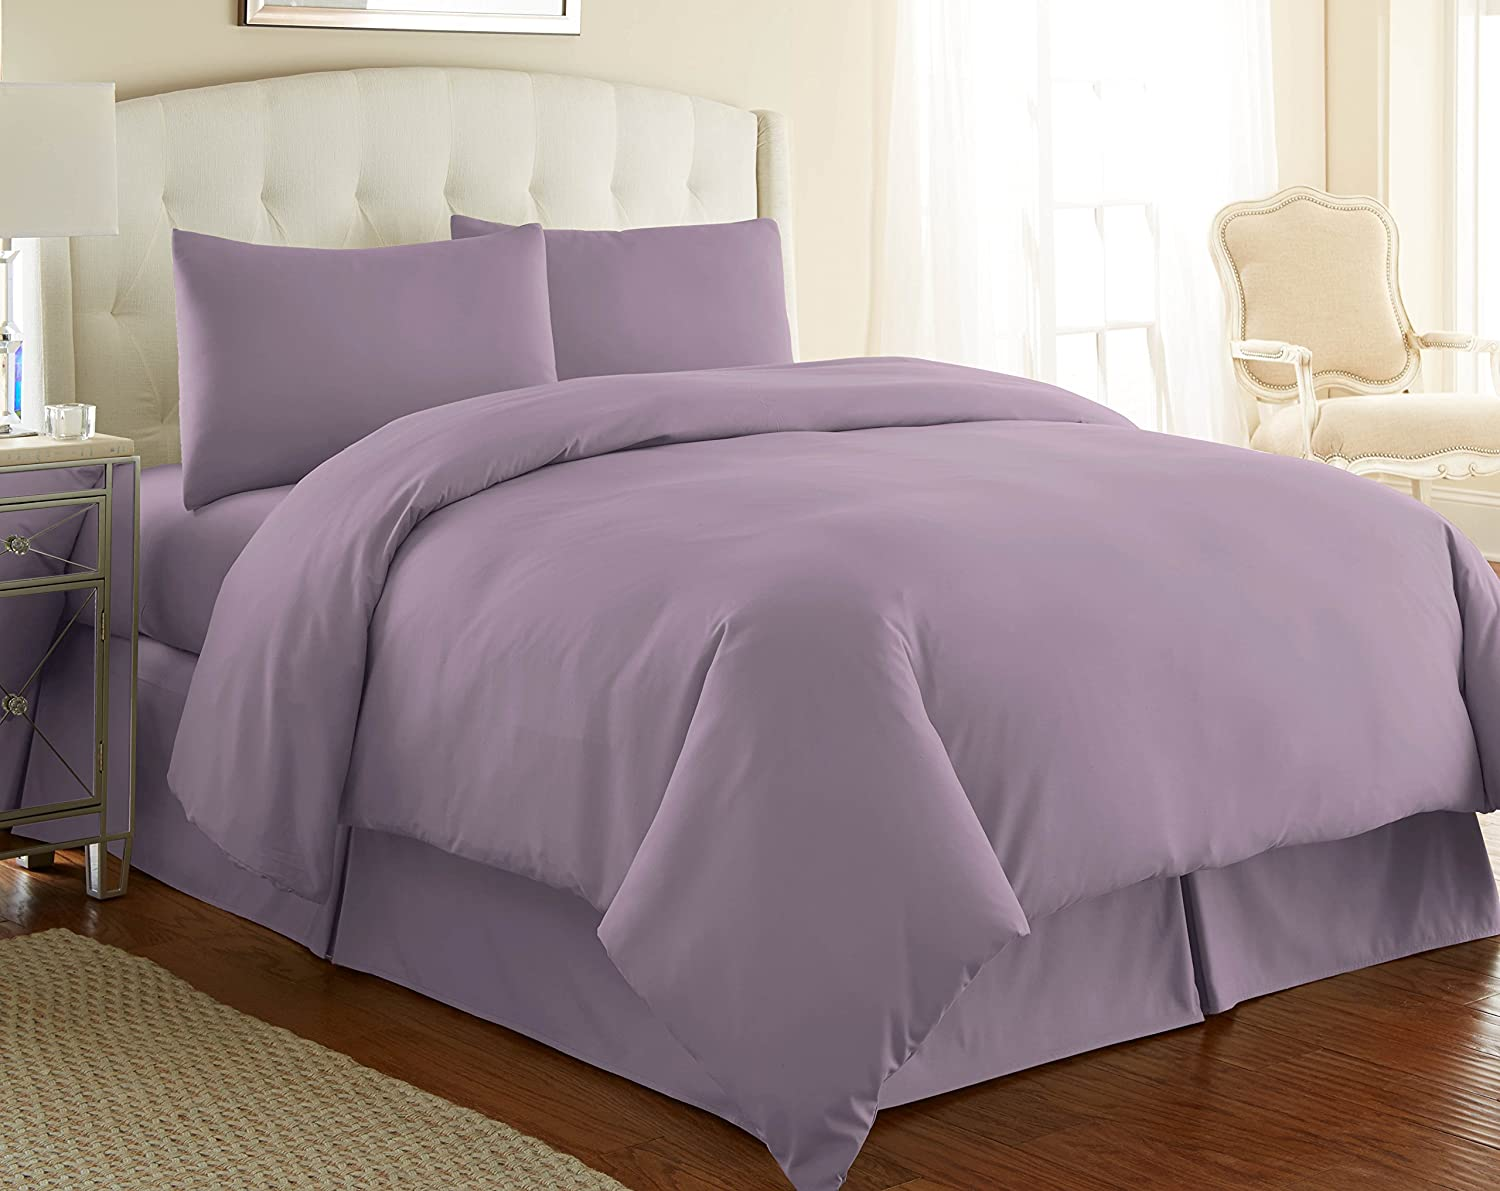 Lavender Duvet Cover Queen Sweetgalas